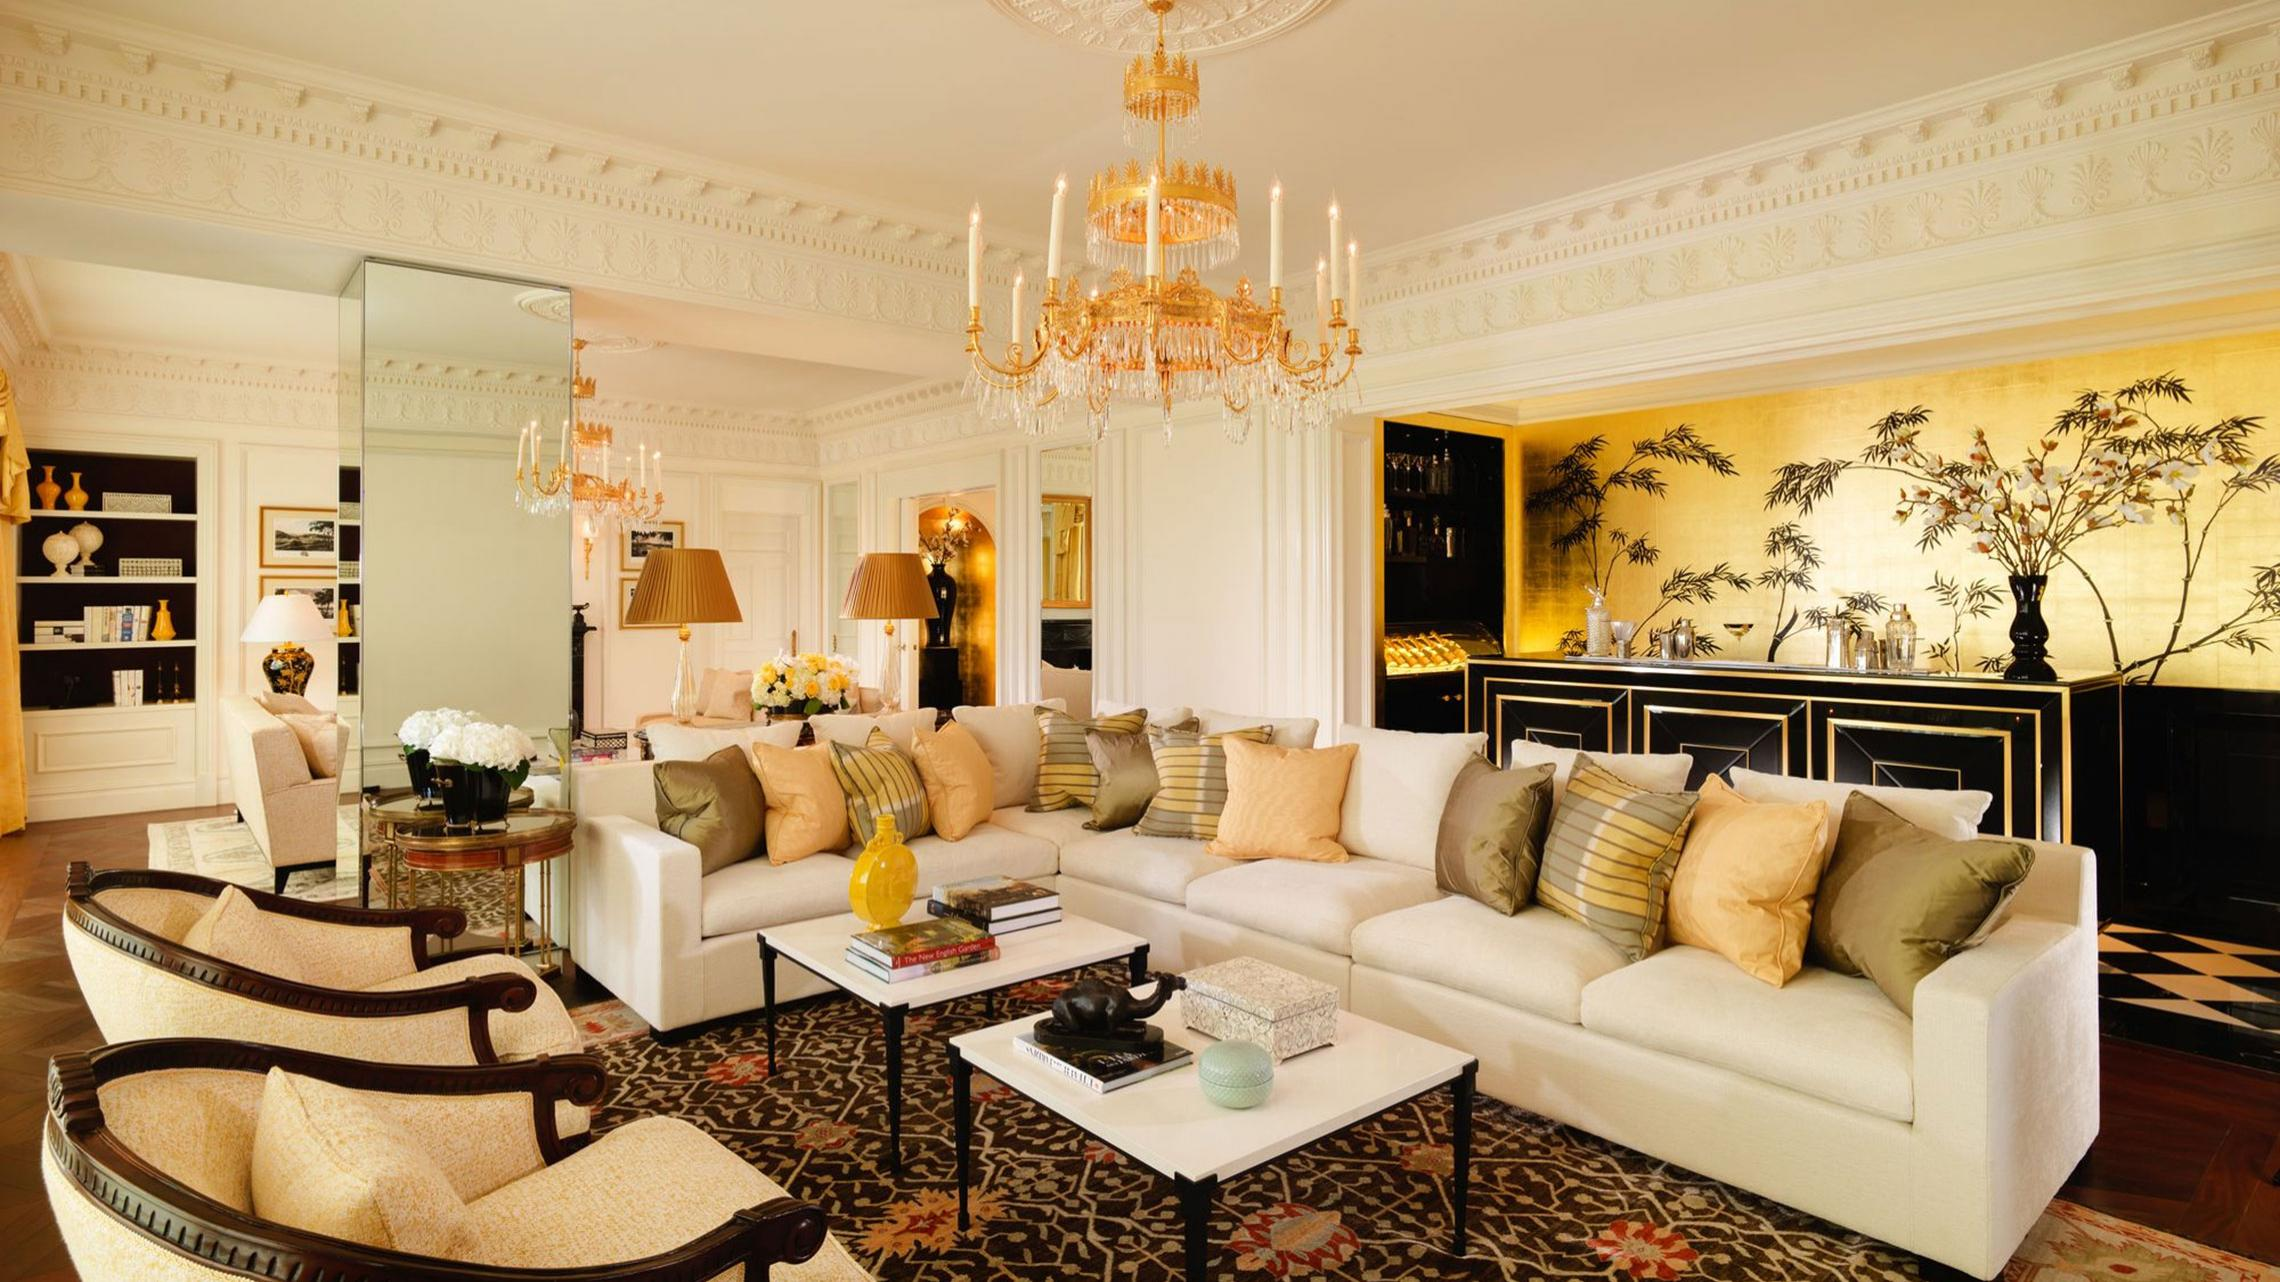 pierre-yves rochon Interior Design from Paris to Chicago: Pierre-Yves Rochon The Savoy Hotel London  2